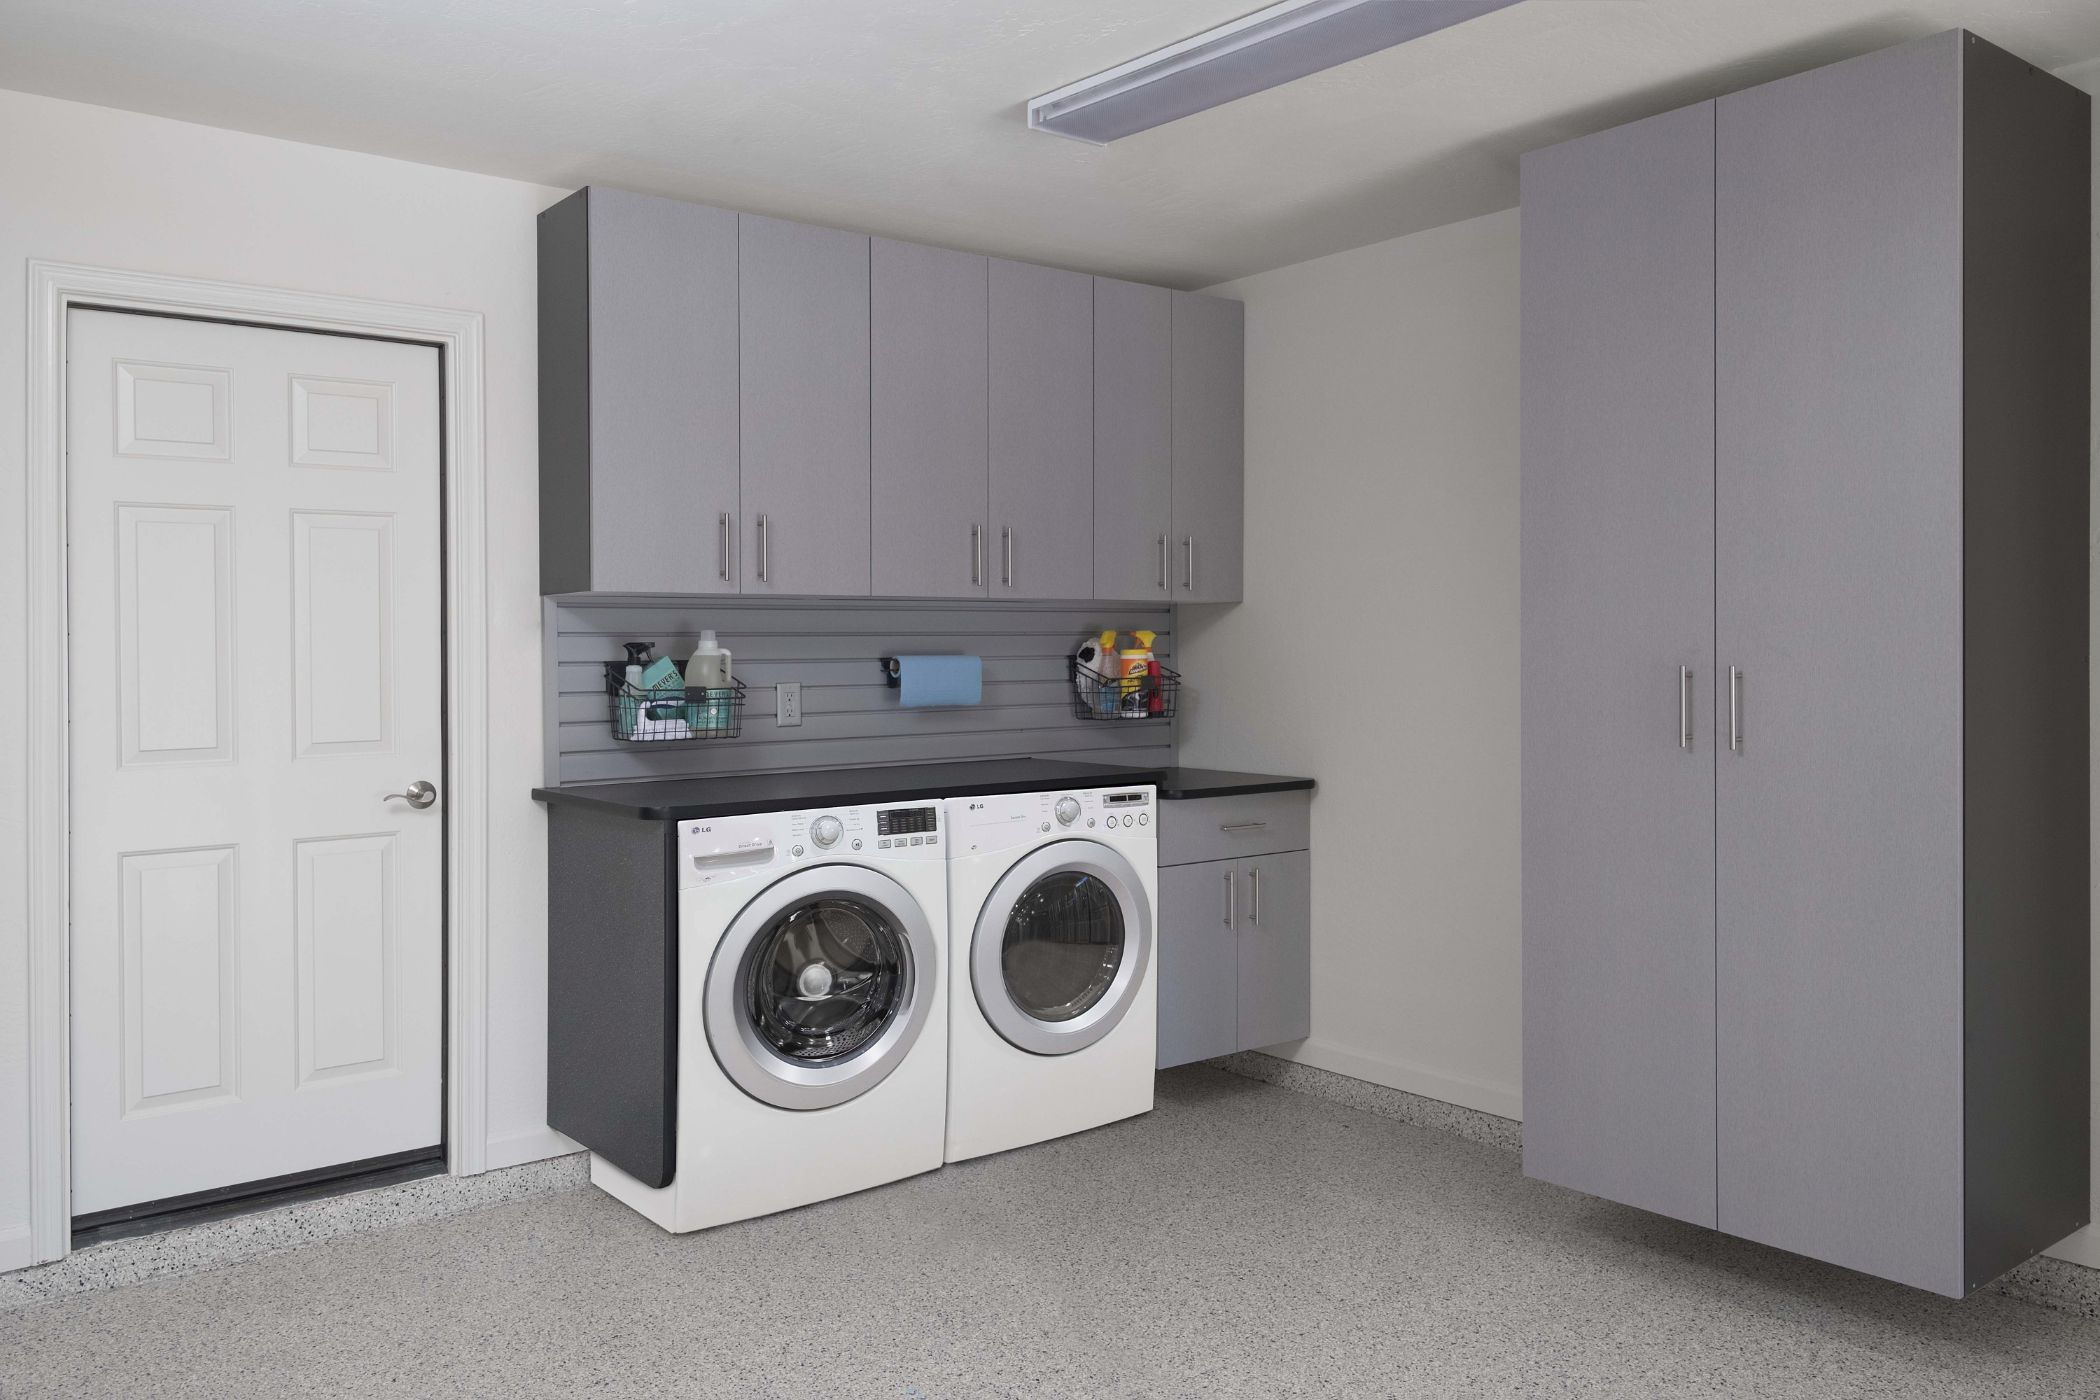 Silver Slate Cabinets With Washer Dryer Angle Malouf 2016